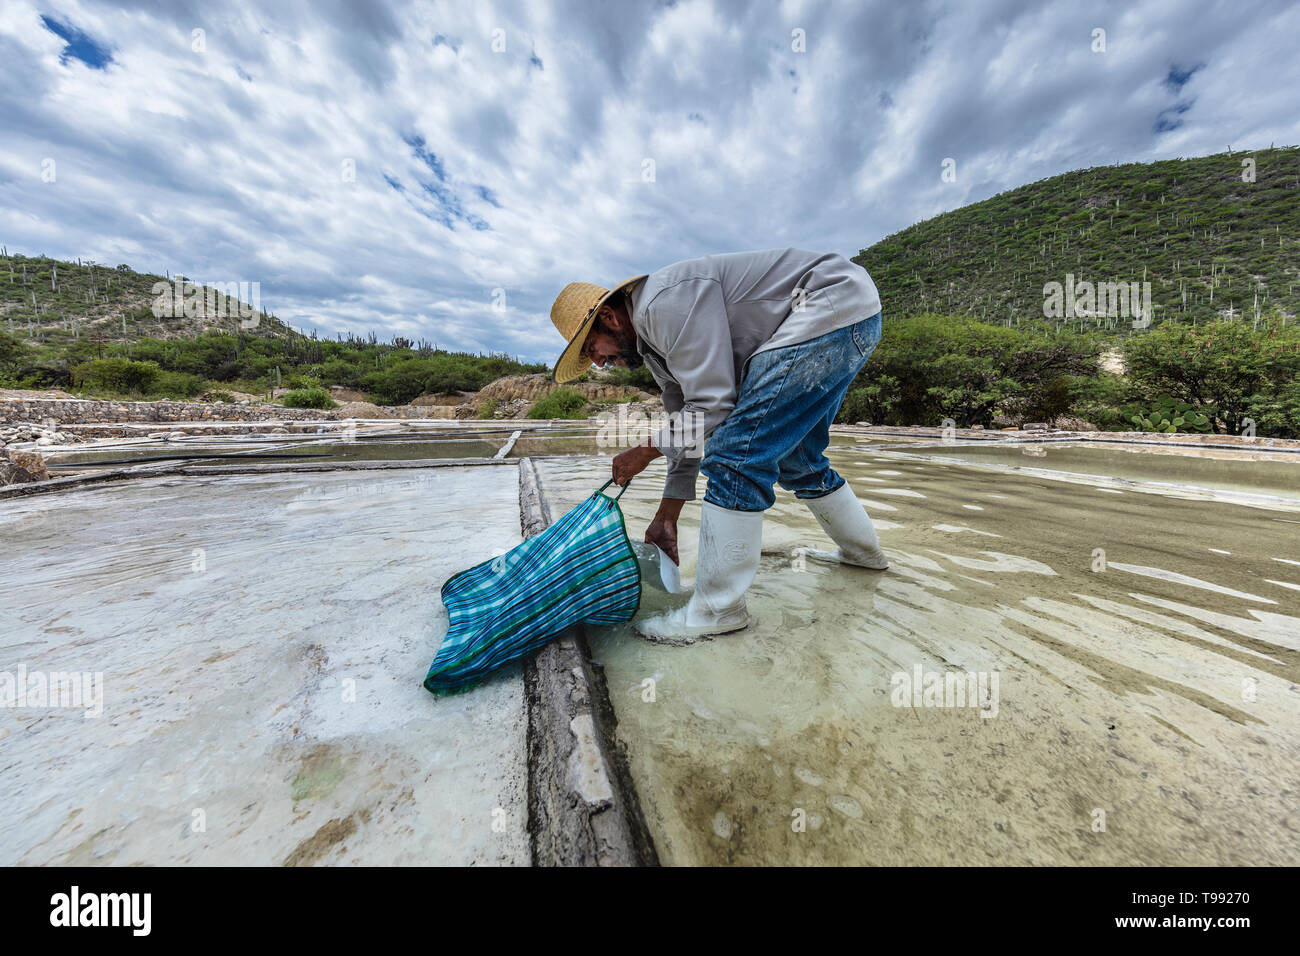 Traditional Salt making in the vally of Zapotitlan in Tehuacan City, Mexico Stock Photo